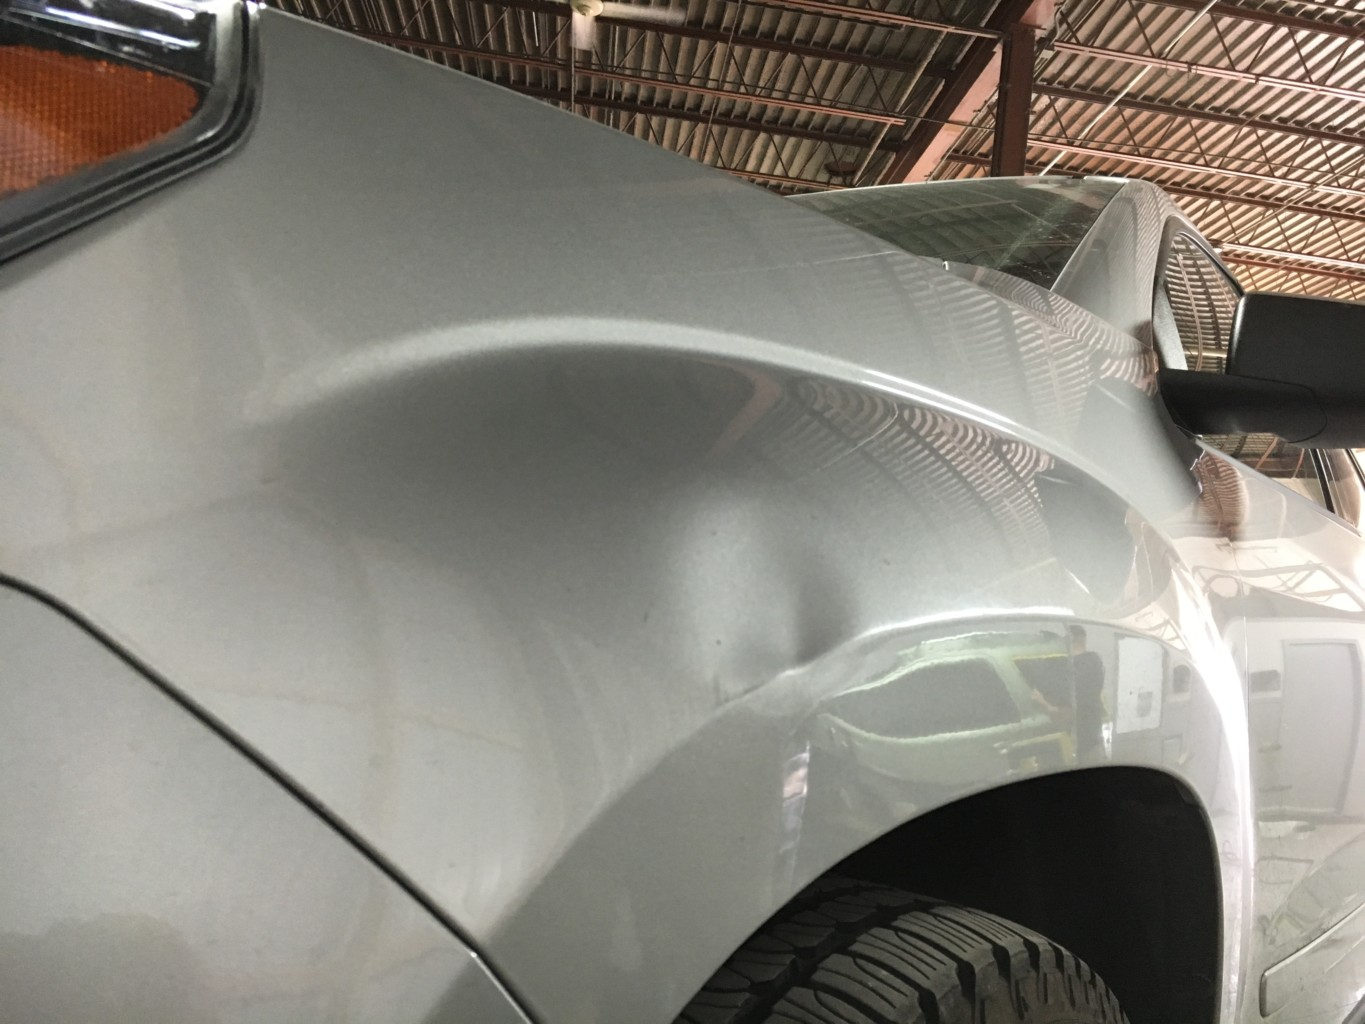 Paintless Dent Repair Grand Rapids, Michigan: Acadia fender - before